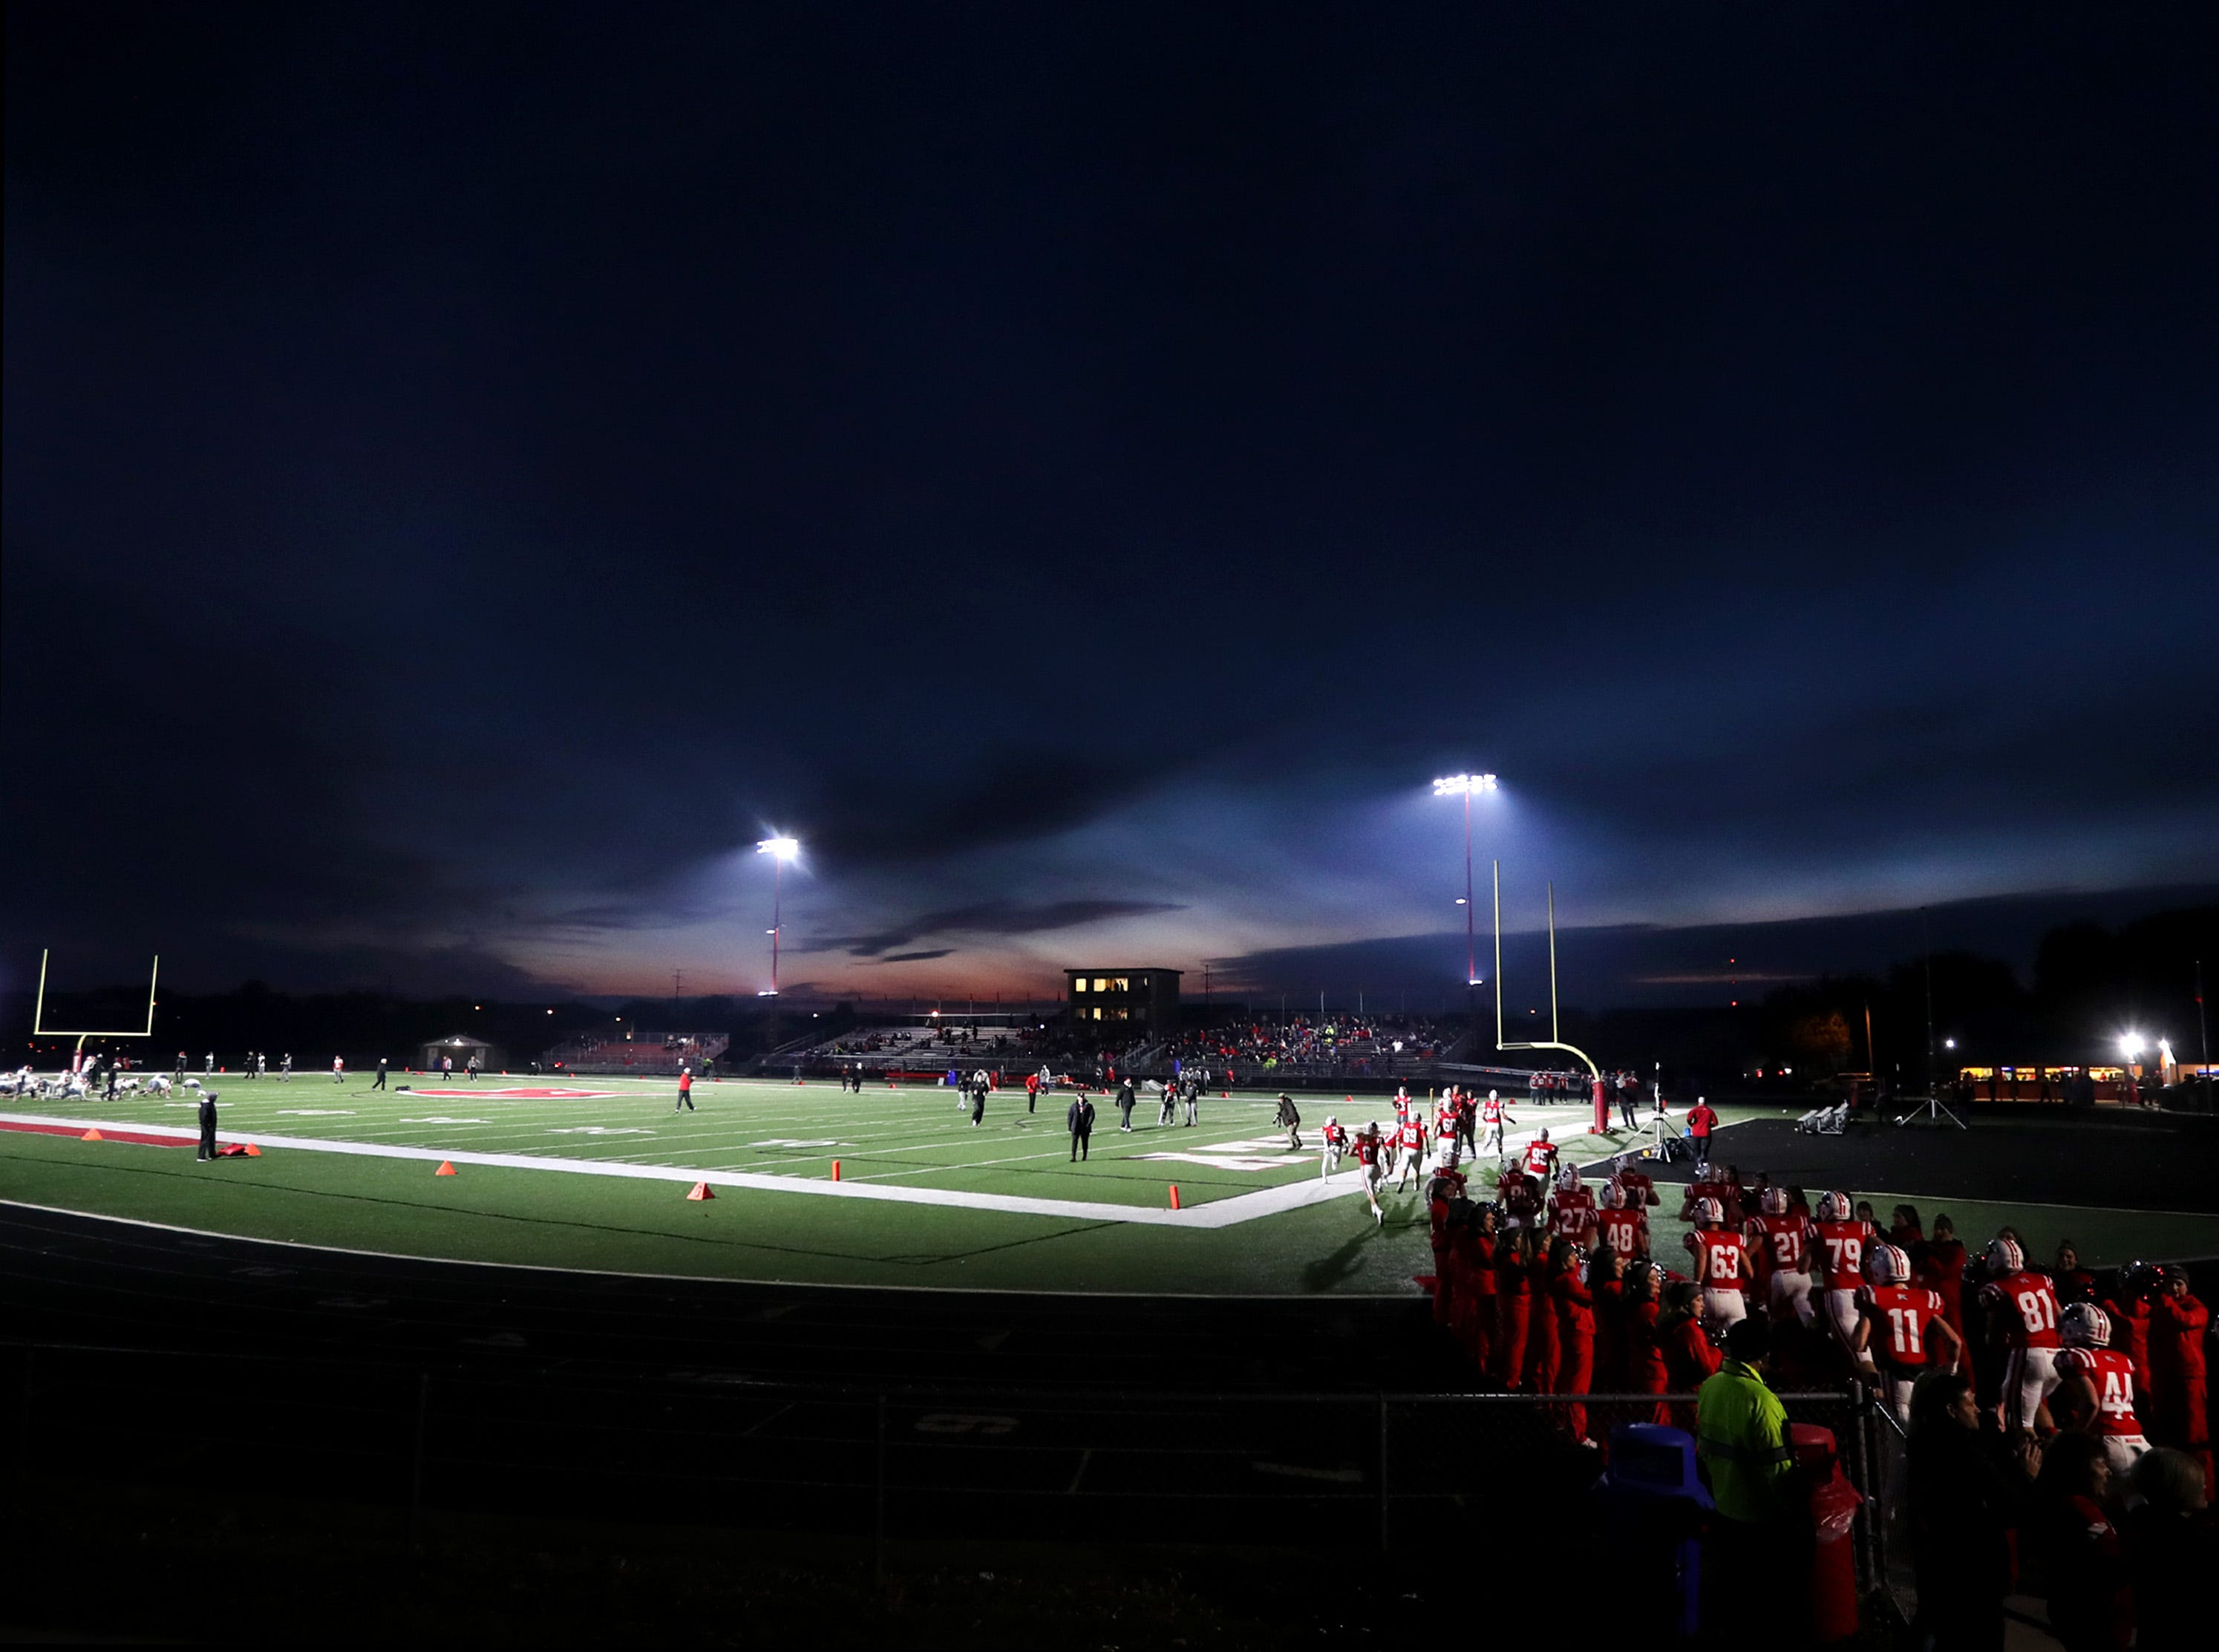 Kimberly High School players take to the field before their round 2 playoff game against Neenah High School Friday, Oct. 26, 2018, in Kimberly, Wis.Danny Damiani/USA TODAY NETWORK-Wisconsin